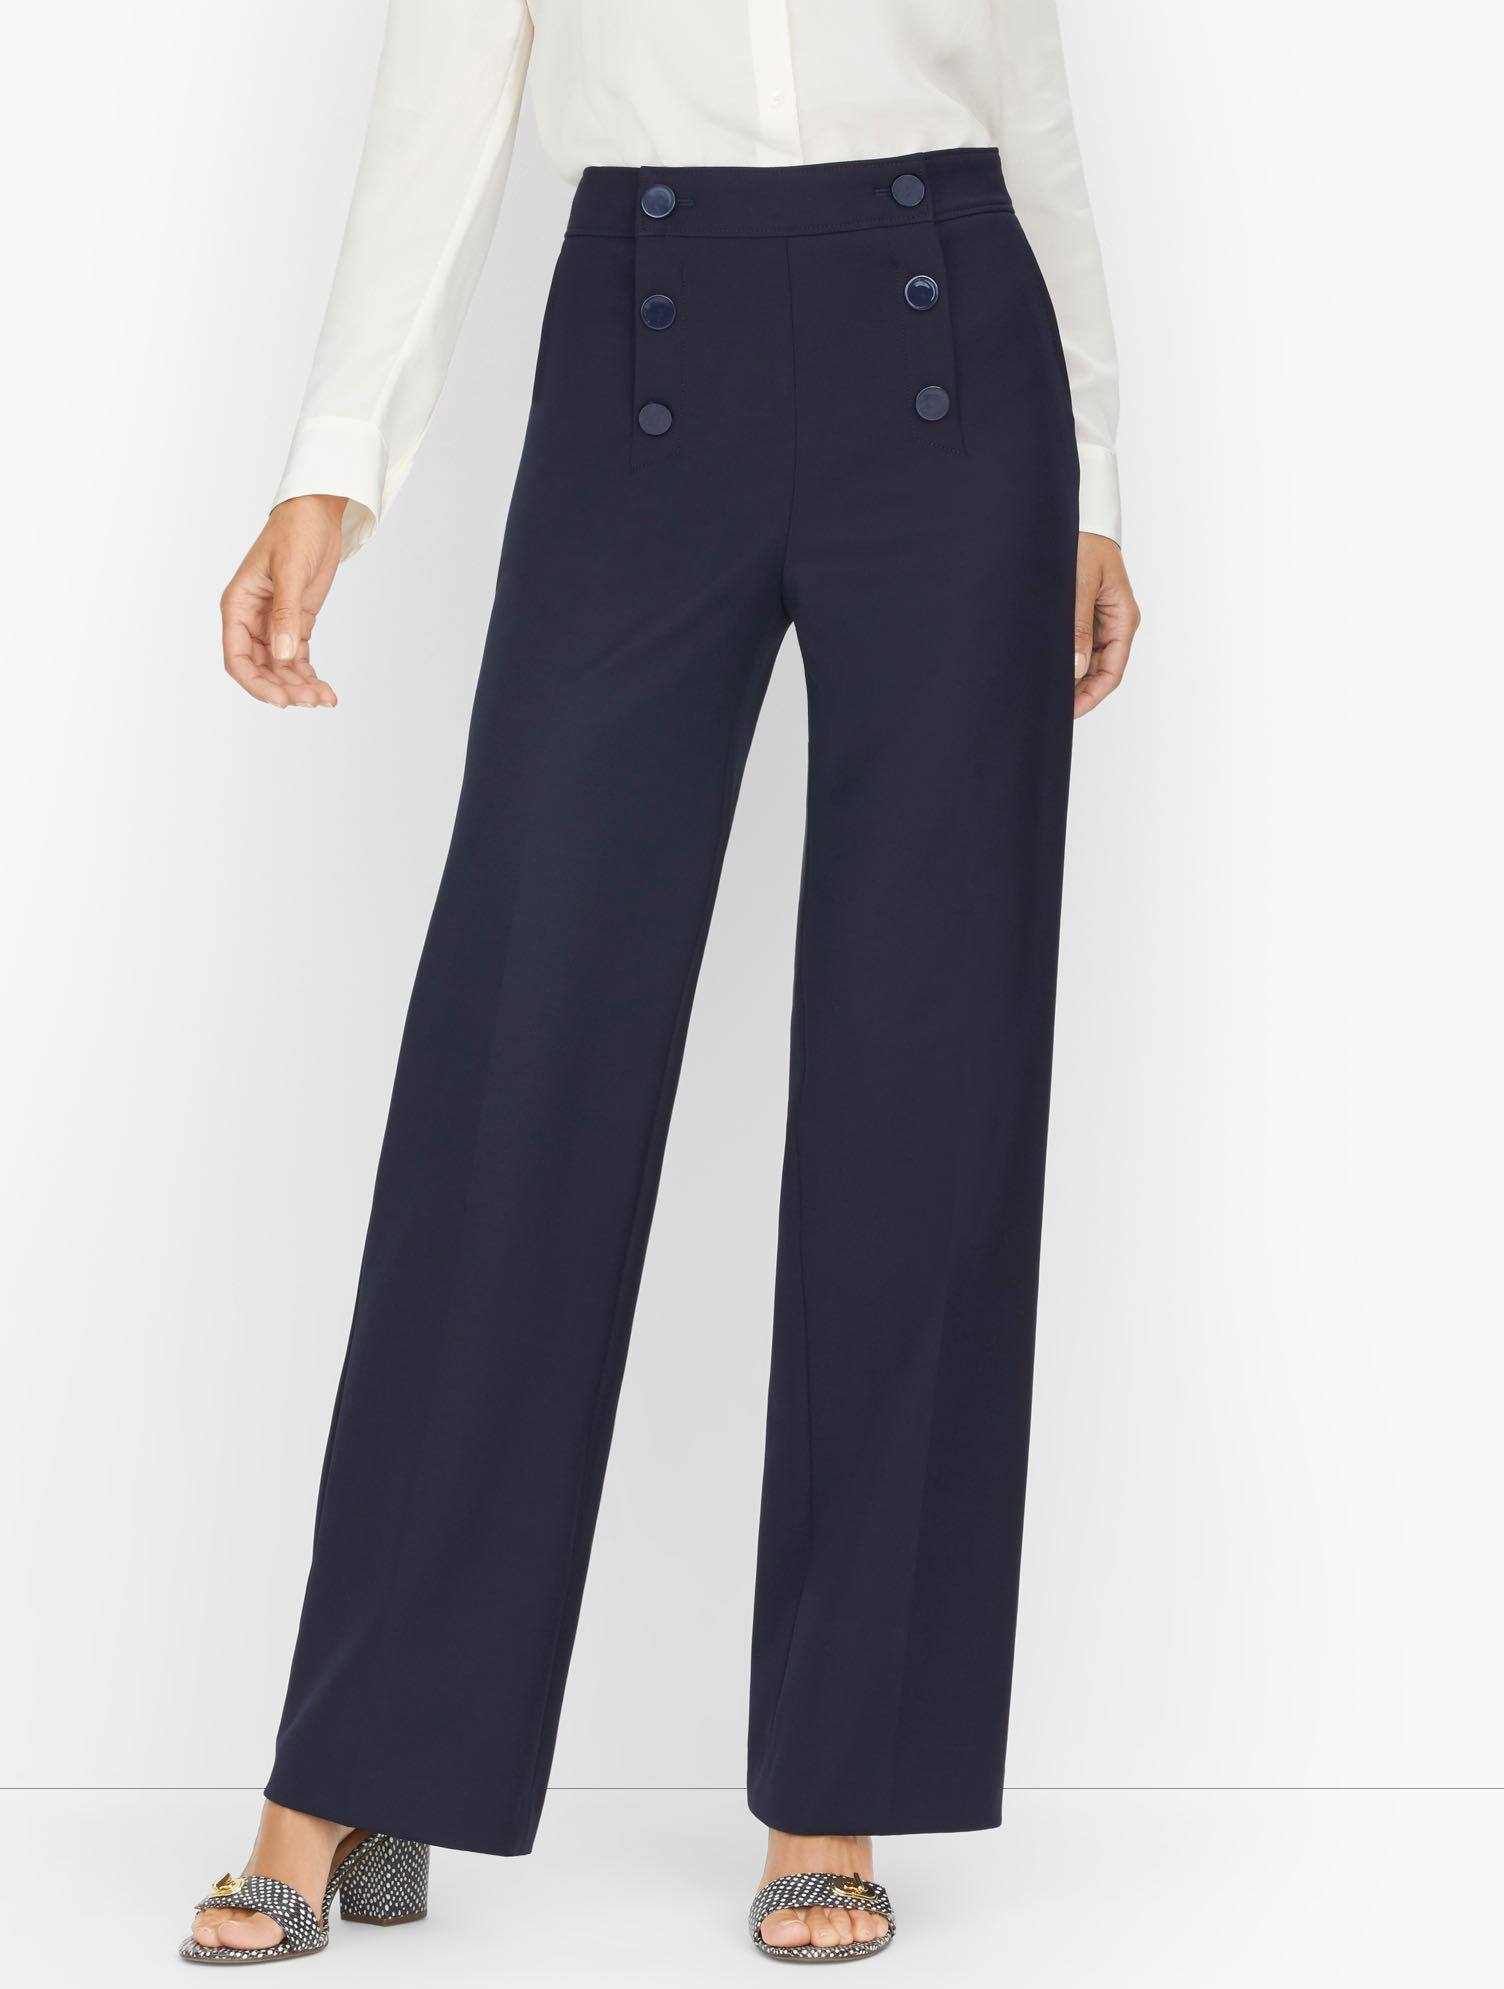 1930s Style Clothing and Fashion Wide Leg Sailor Pants - Blue - 16 Talbots $89.99 AT vintagedancer.com